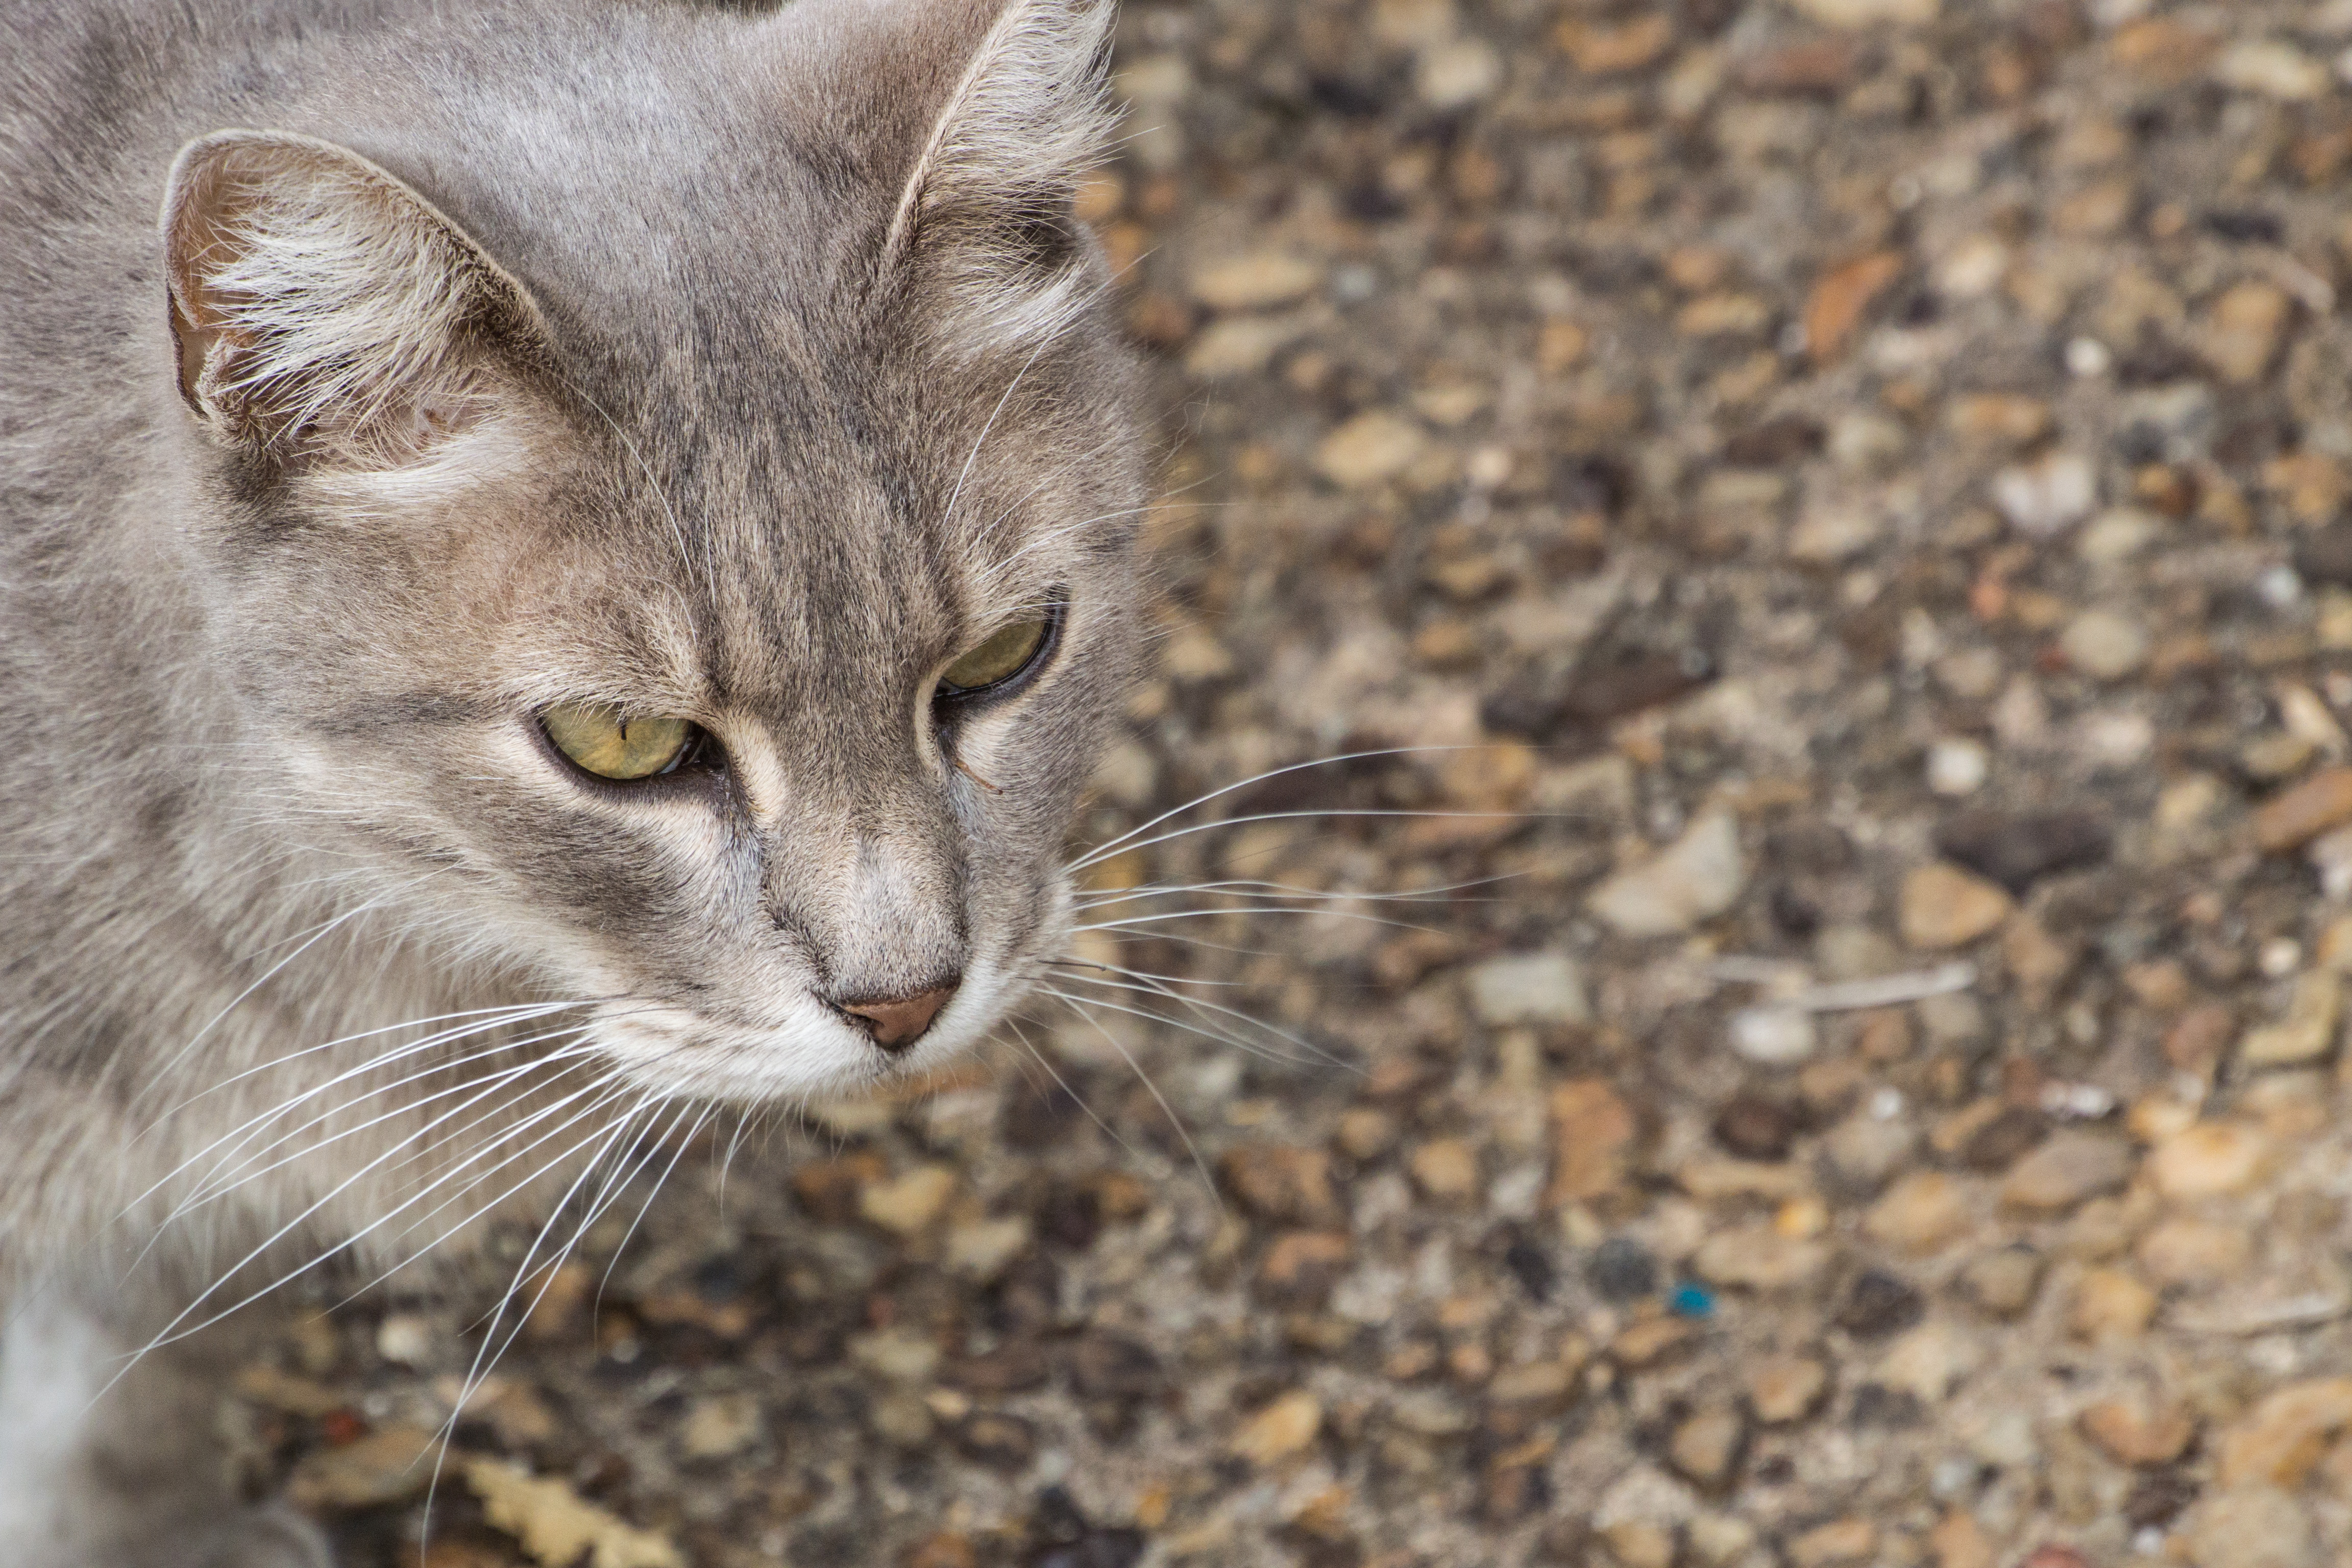 Around our place in st cyprien -france-dordogne-v2-30-110mm-20150718-DSC_0613.jpg, Animal, Aquitaine, Cat, FR, HQ Photo